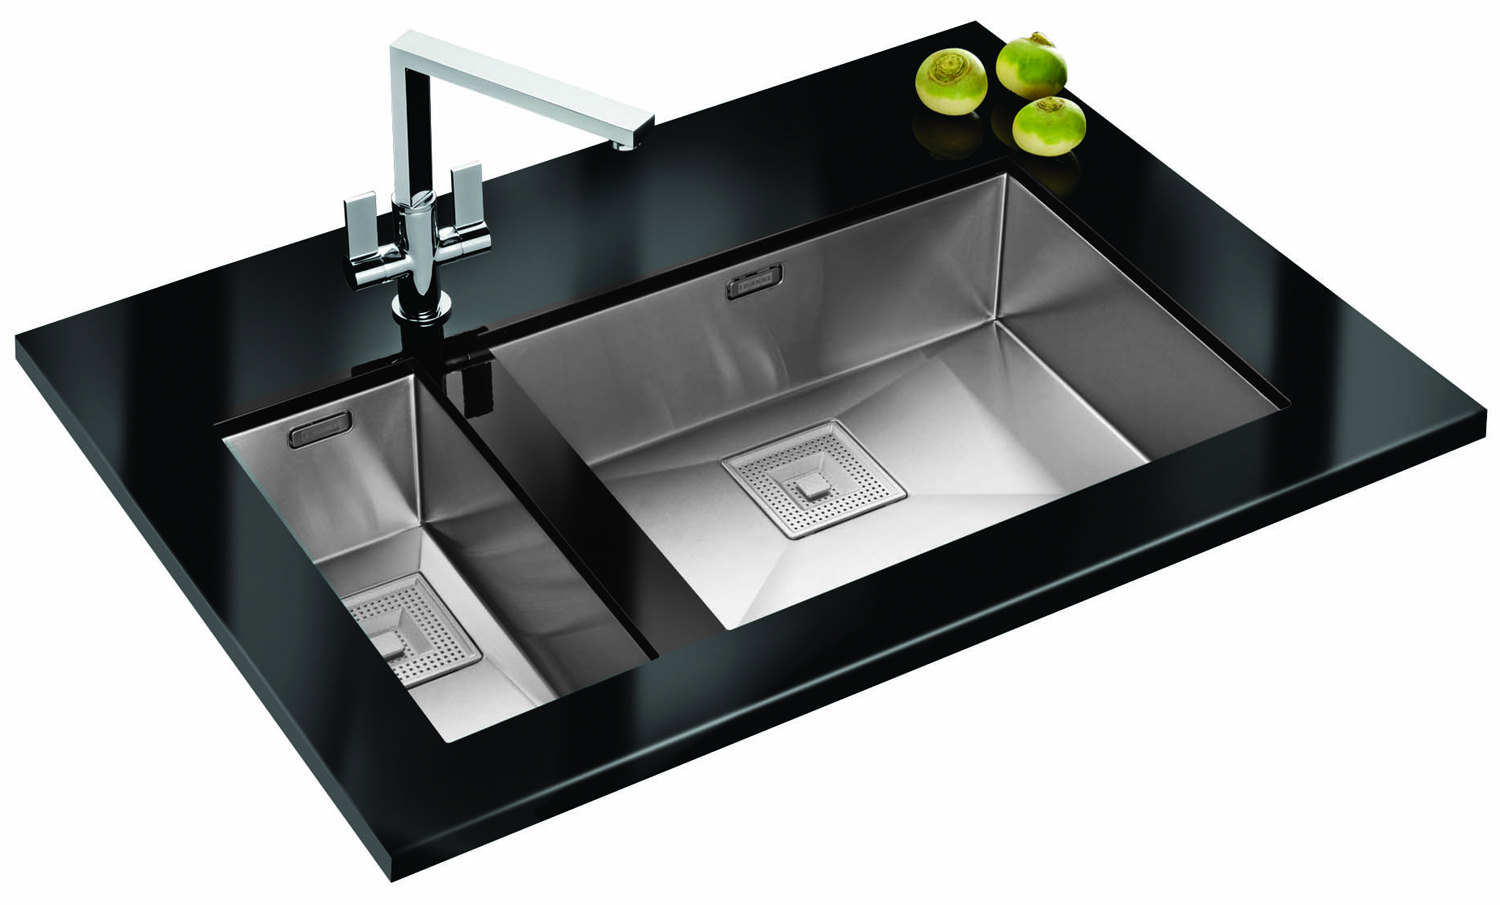 Franke Ss Sinks : ... of Franke Peak PKX 110 55 Stainless Steel 1.0 Bowl Undermount Sink